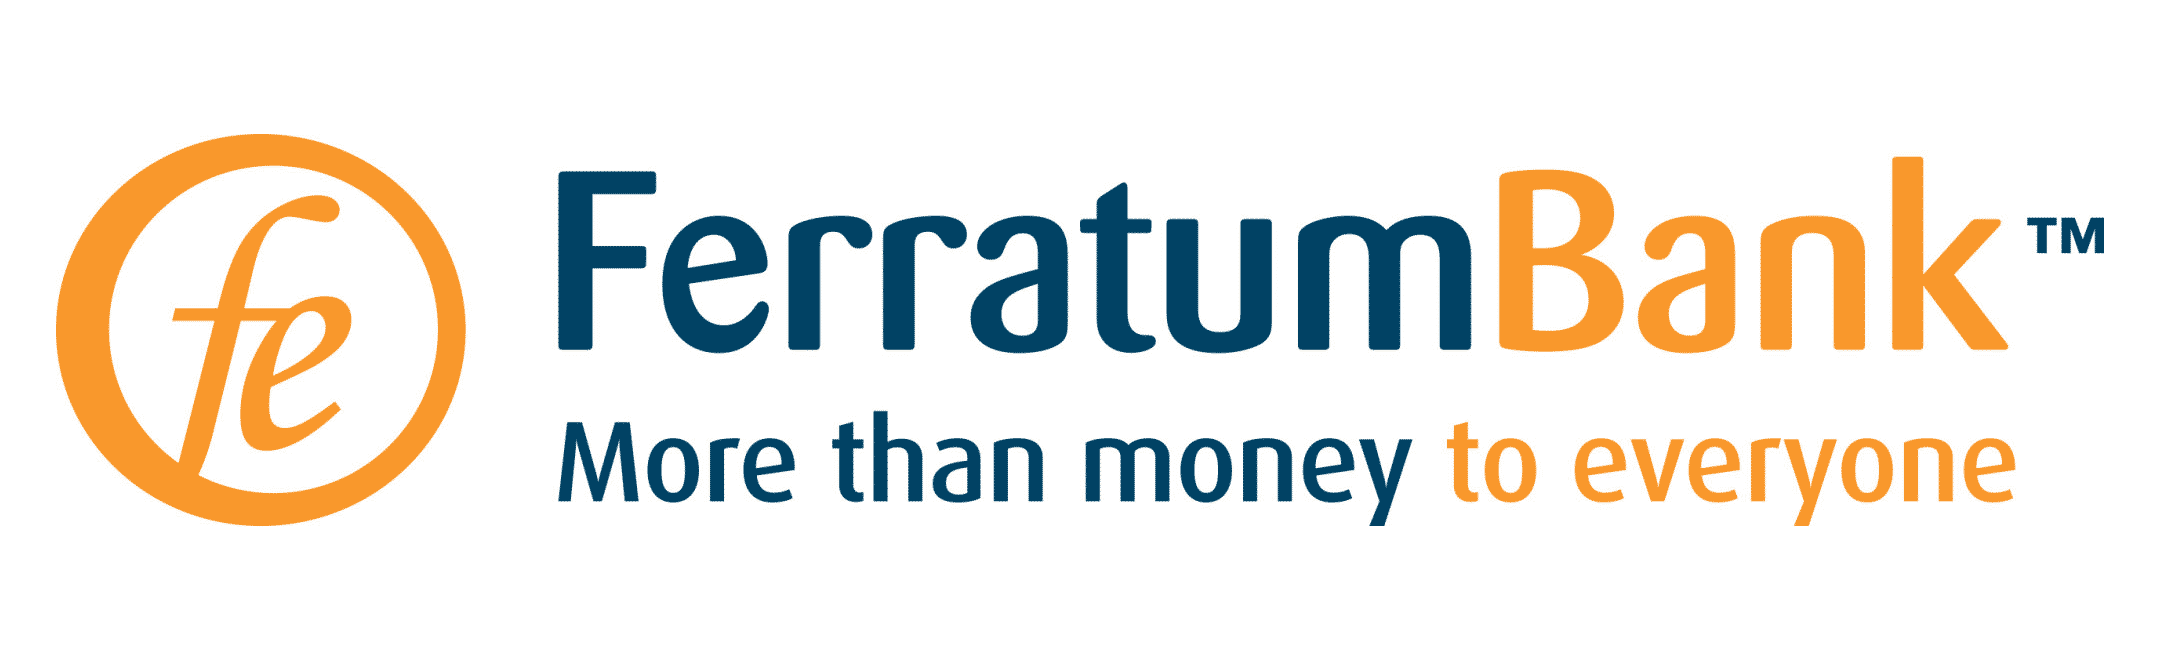 ferratum-bank-logo